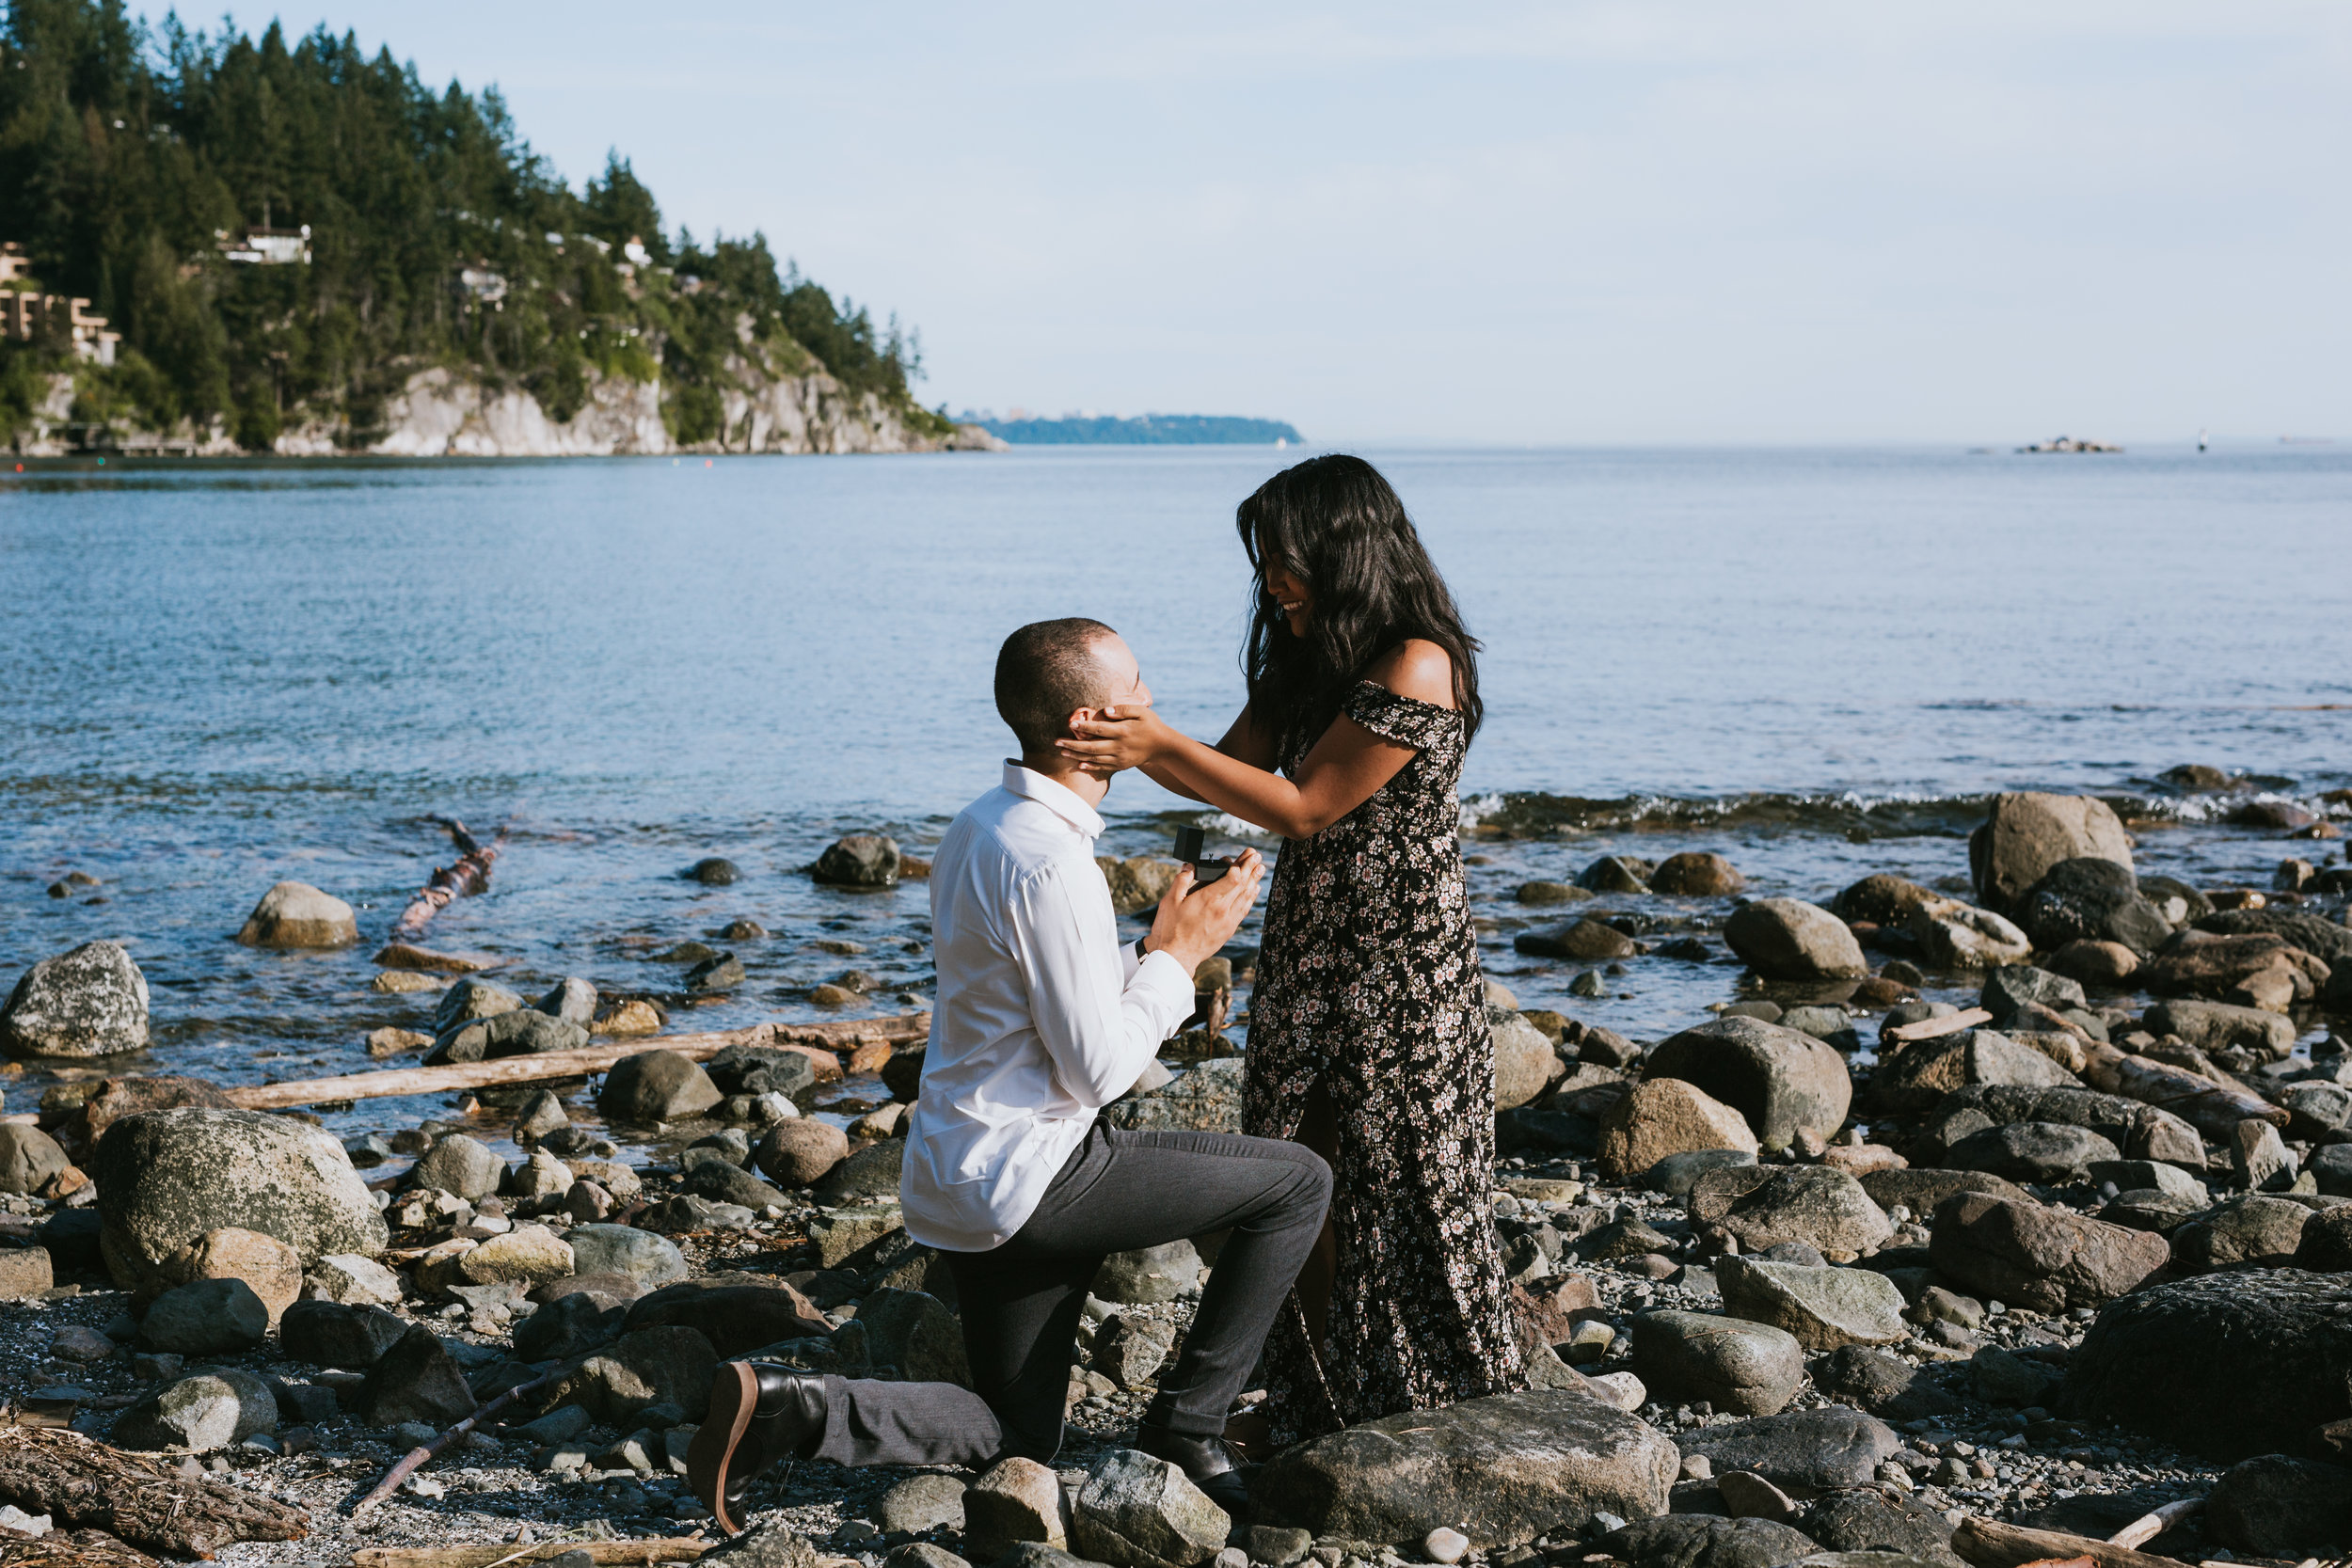 oliver-rabanes-vancouver-surrey-whytecliff-park-proposal-engagement-photography-14.JPG